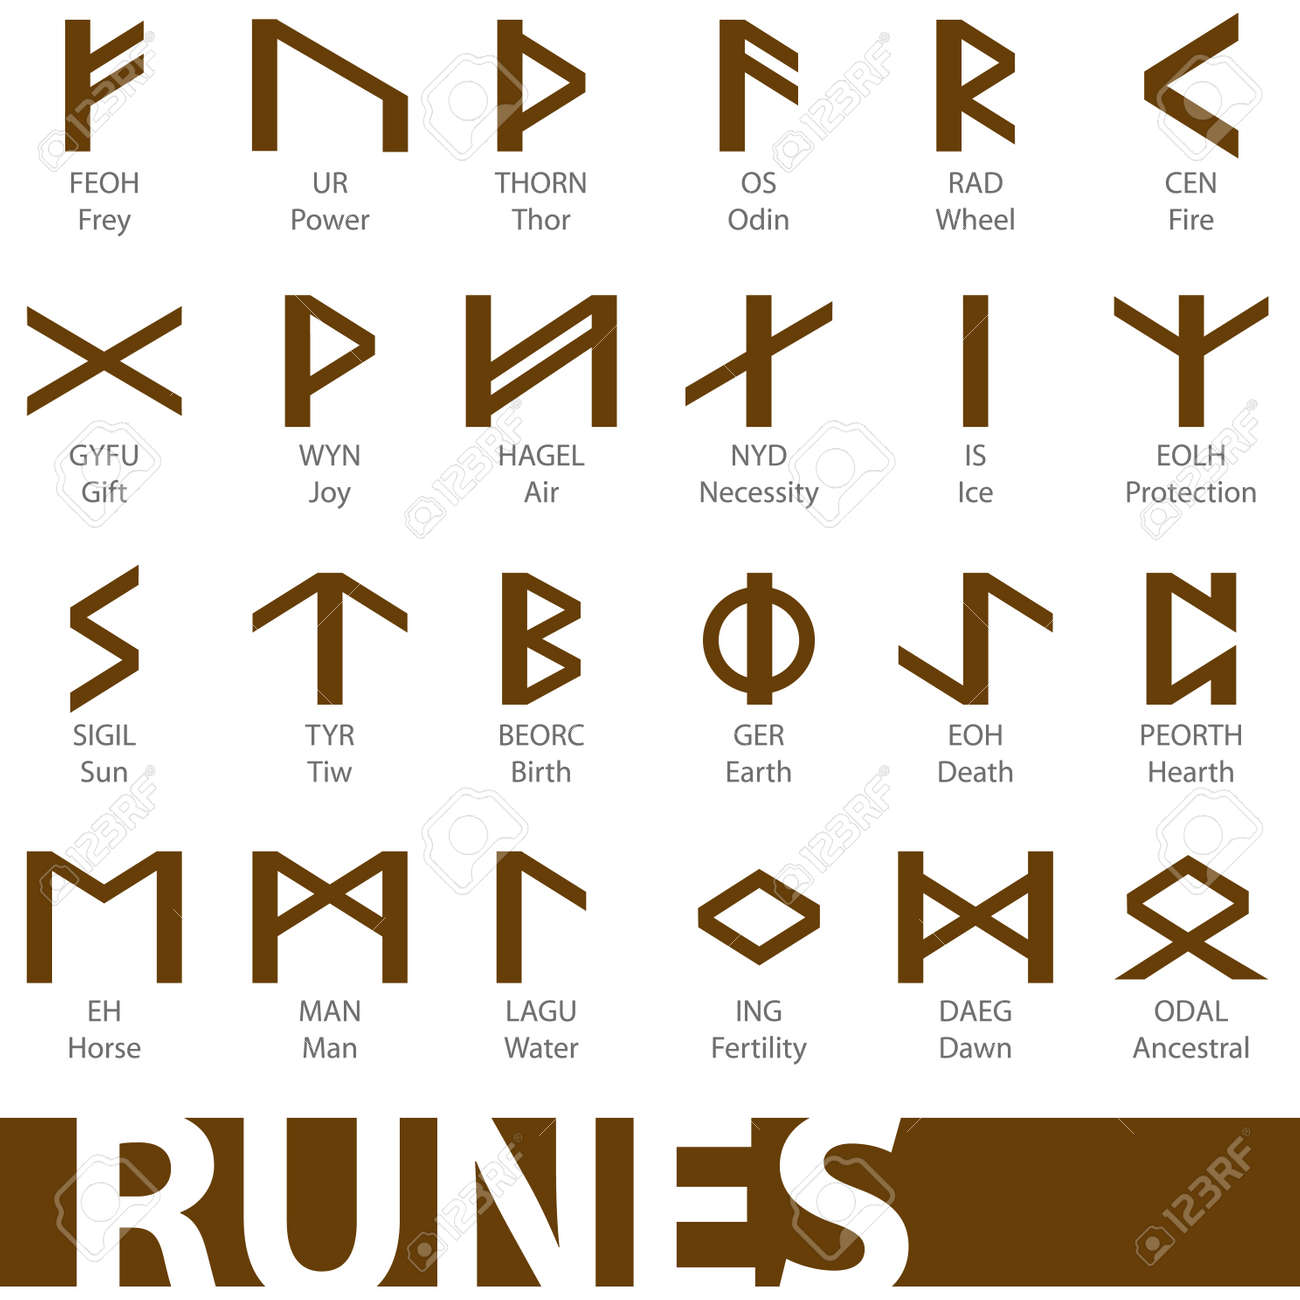 Norse Symbols For Strength